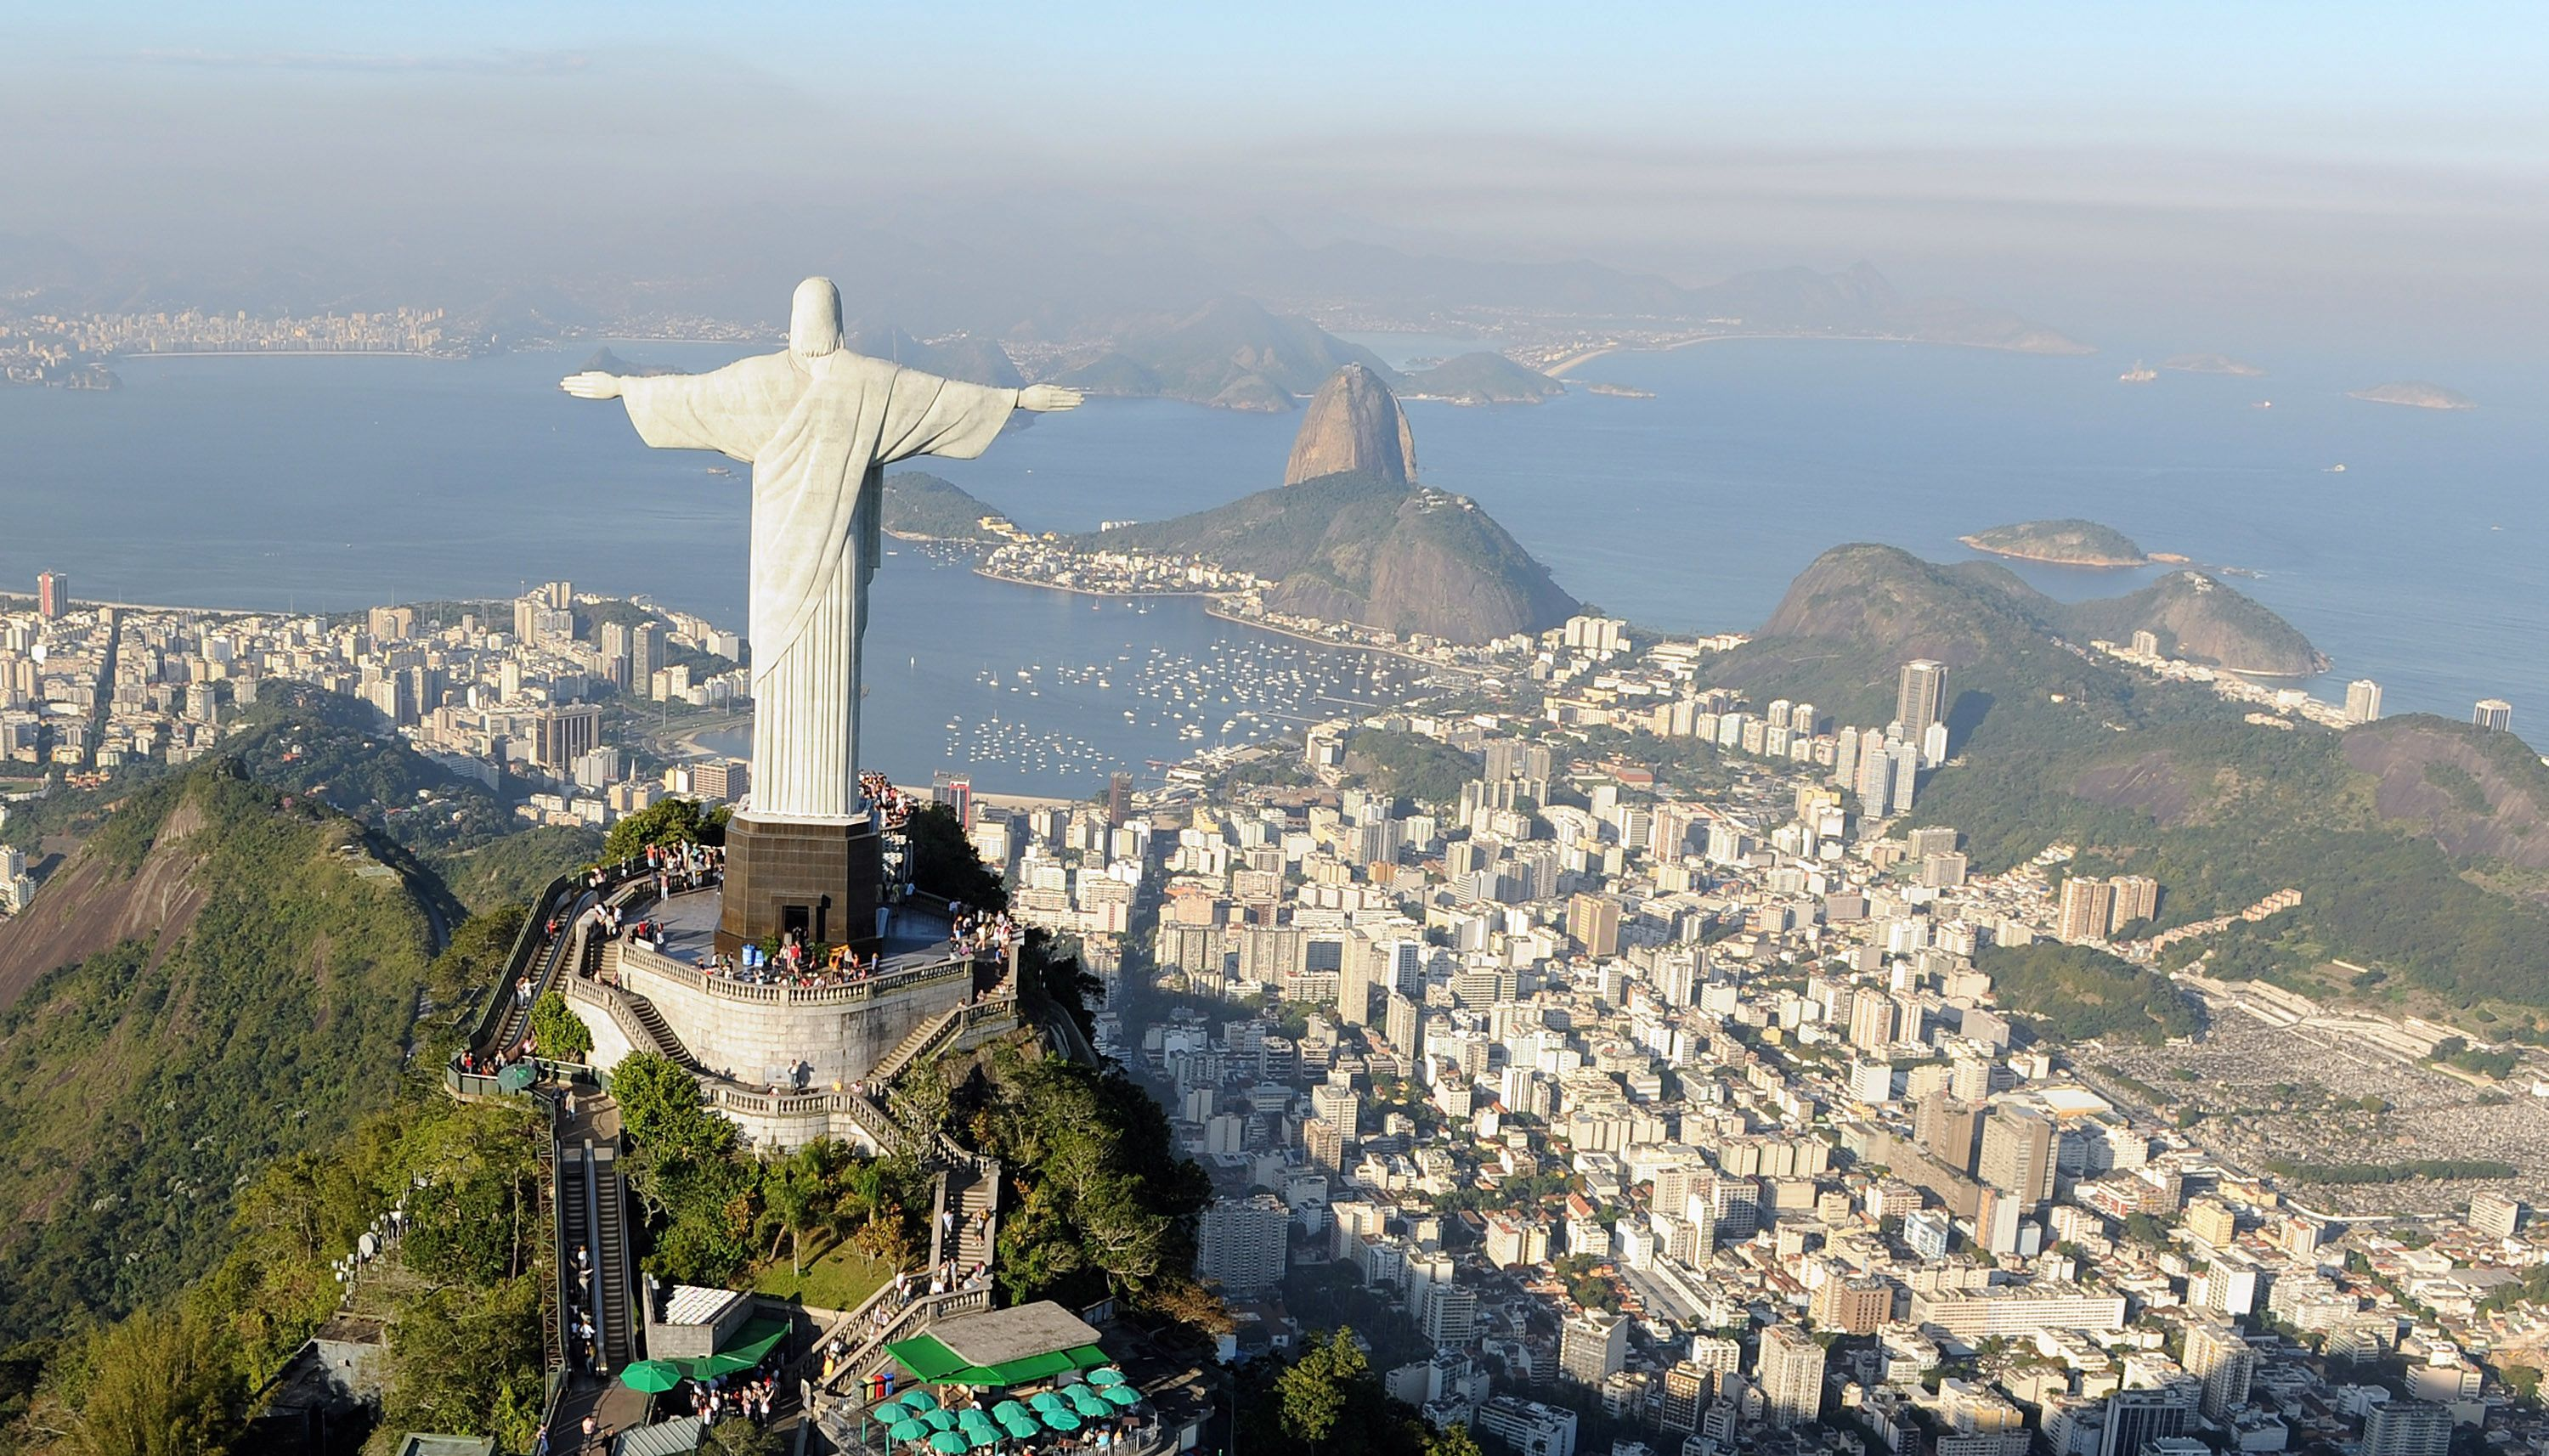 Olympics promotion planning in Rio-de-Janeiro: the site of the next Olympics